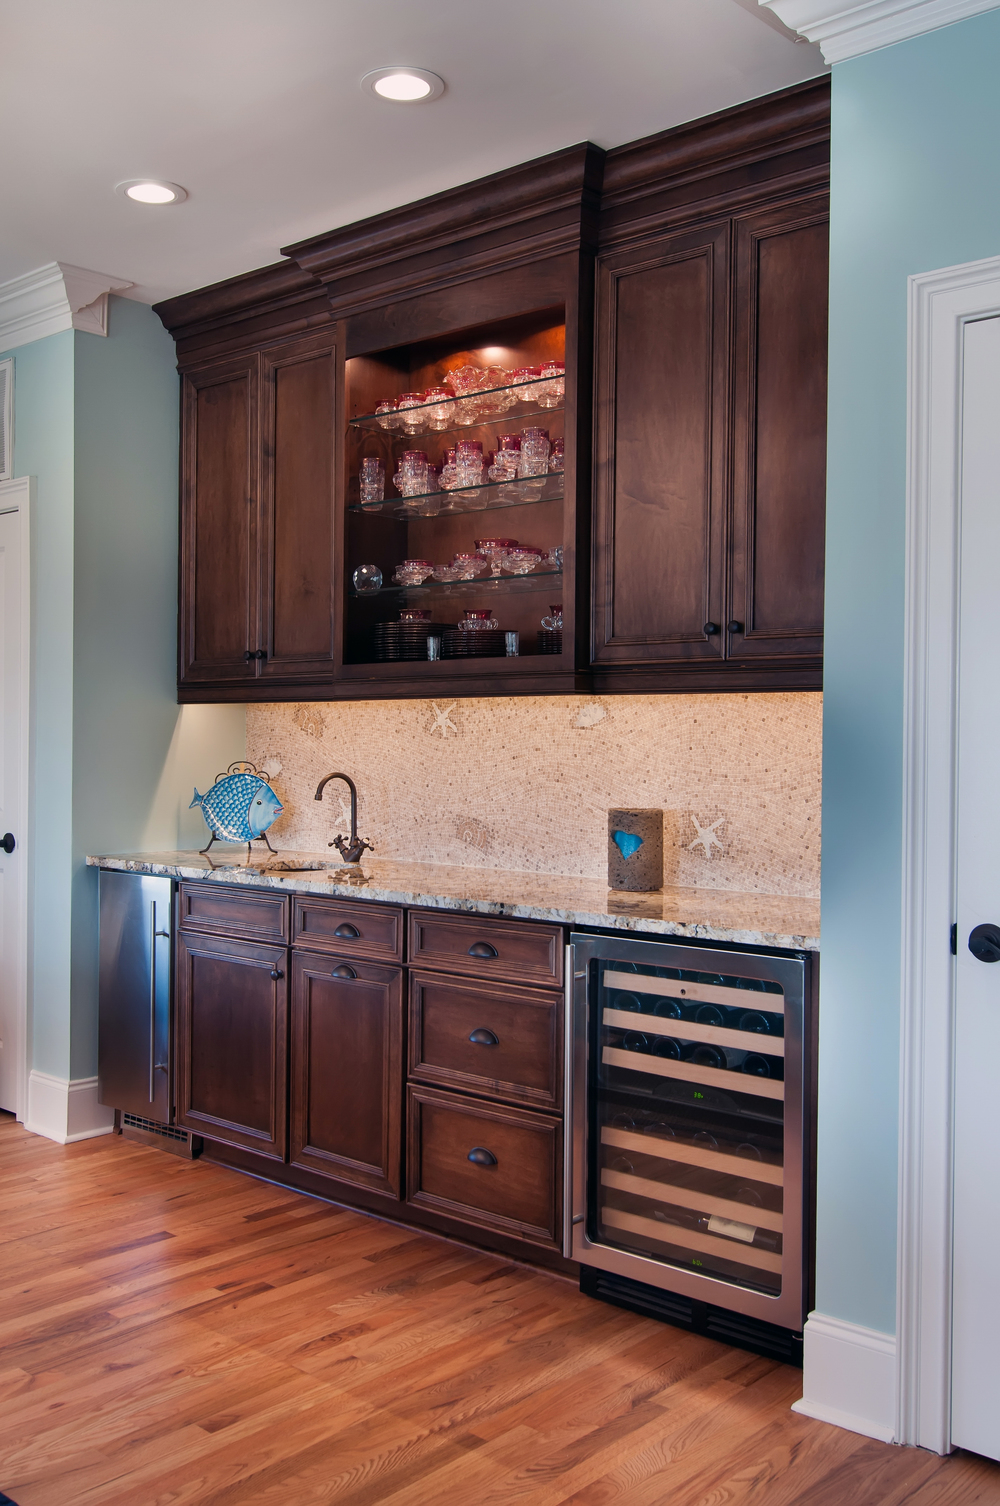 Kitchen Remodel Charleston Sc Home Improvement Renovation Bath Kitchen Remodeling Gamble